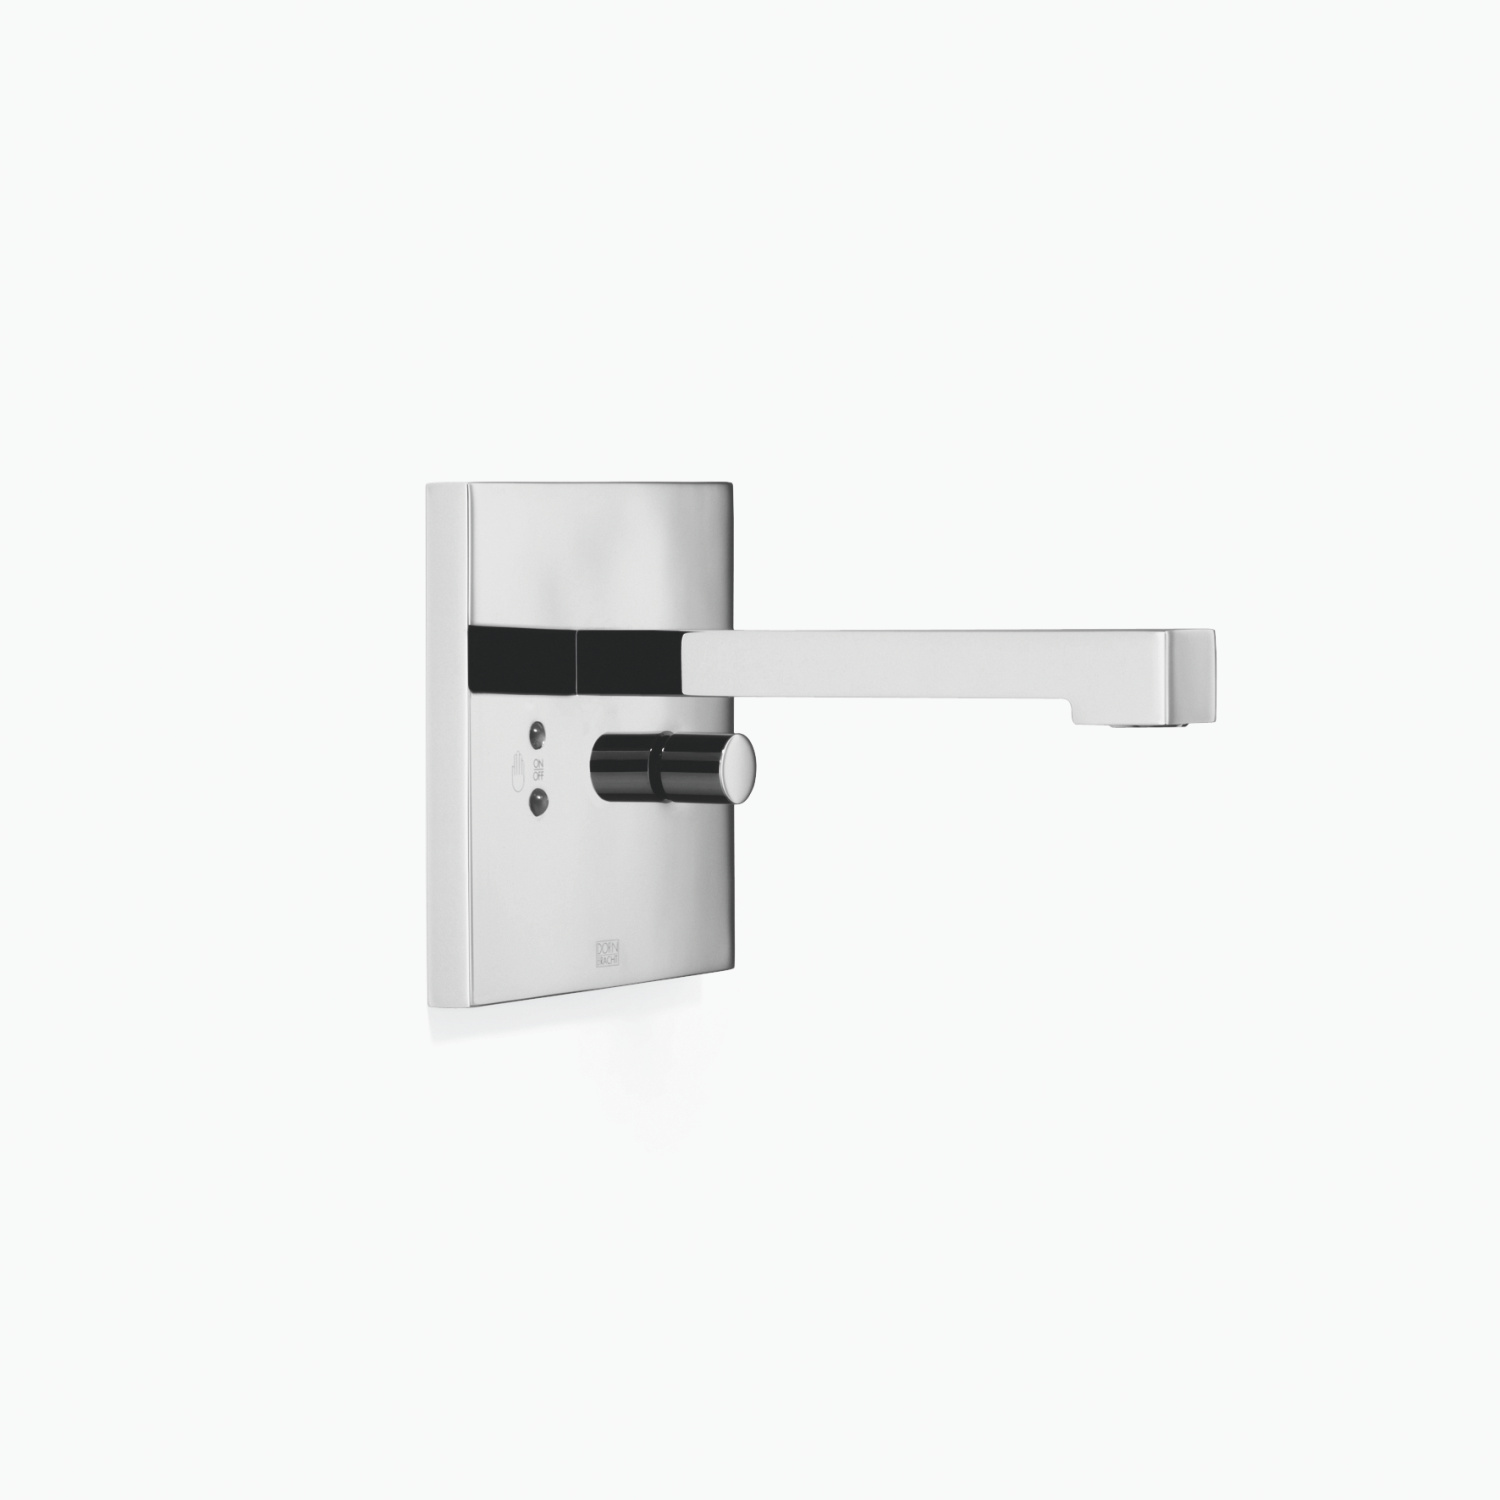 Wall-mounted infrared basin mixer with mixing button without pop-up waste - polished chrome